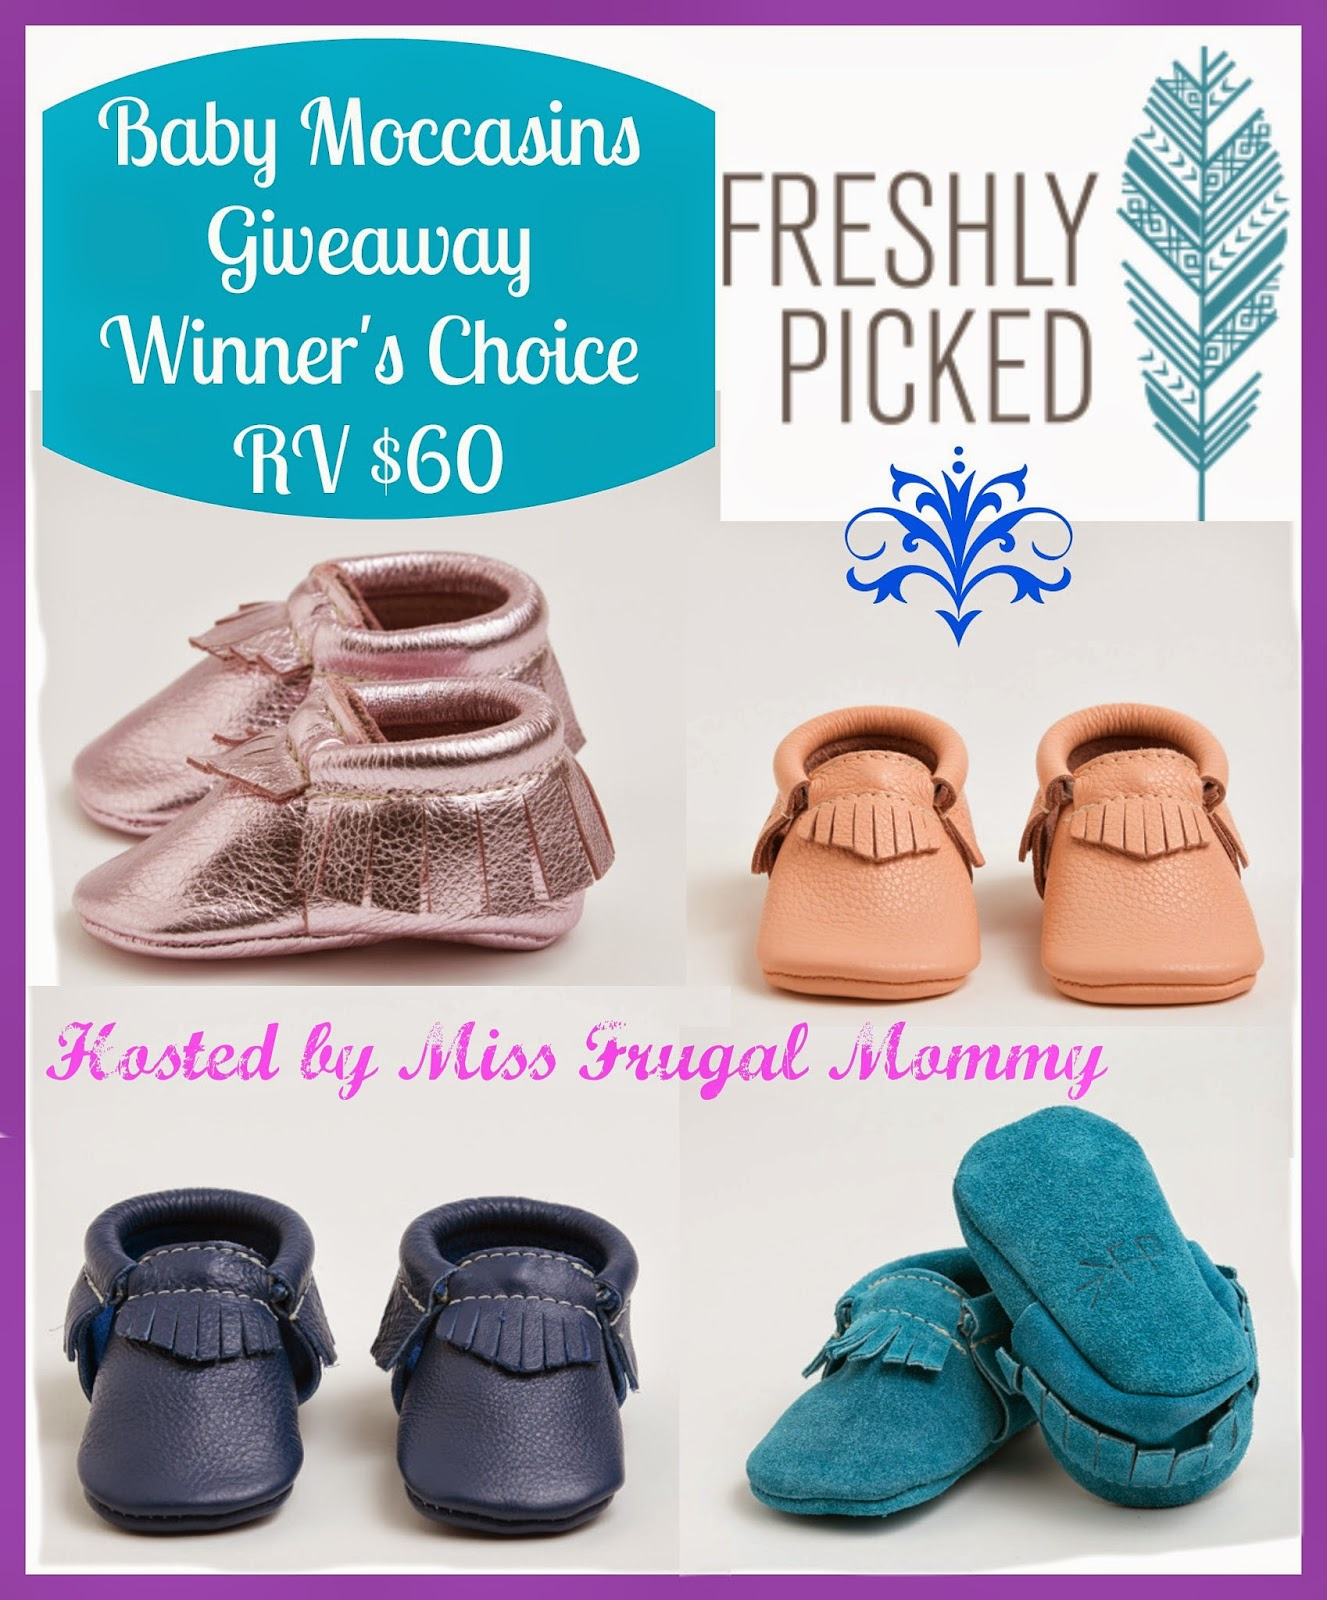 Freshly Picked Baby Moccasins Giveaway